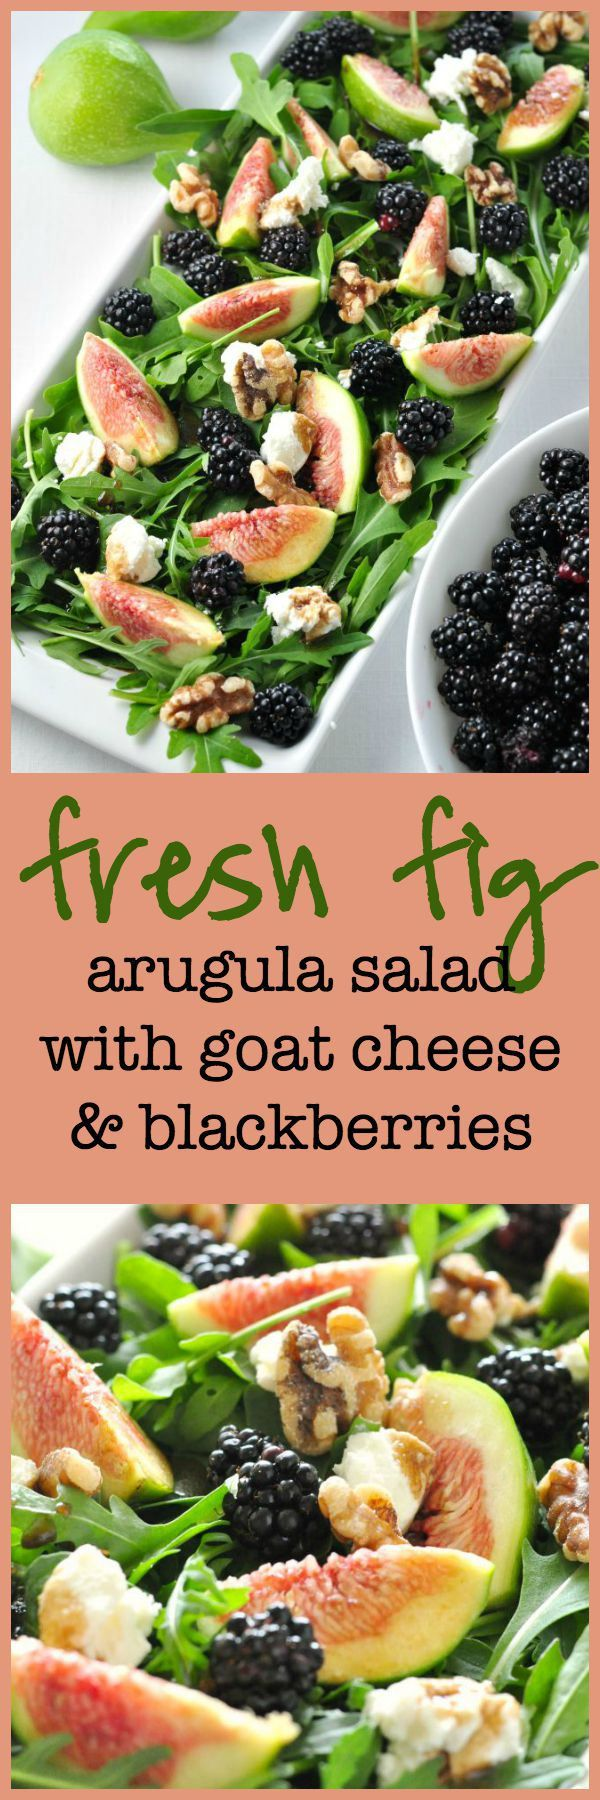 Fresh figs, Arugula salad and Figs on Pinterest